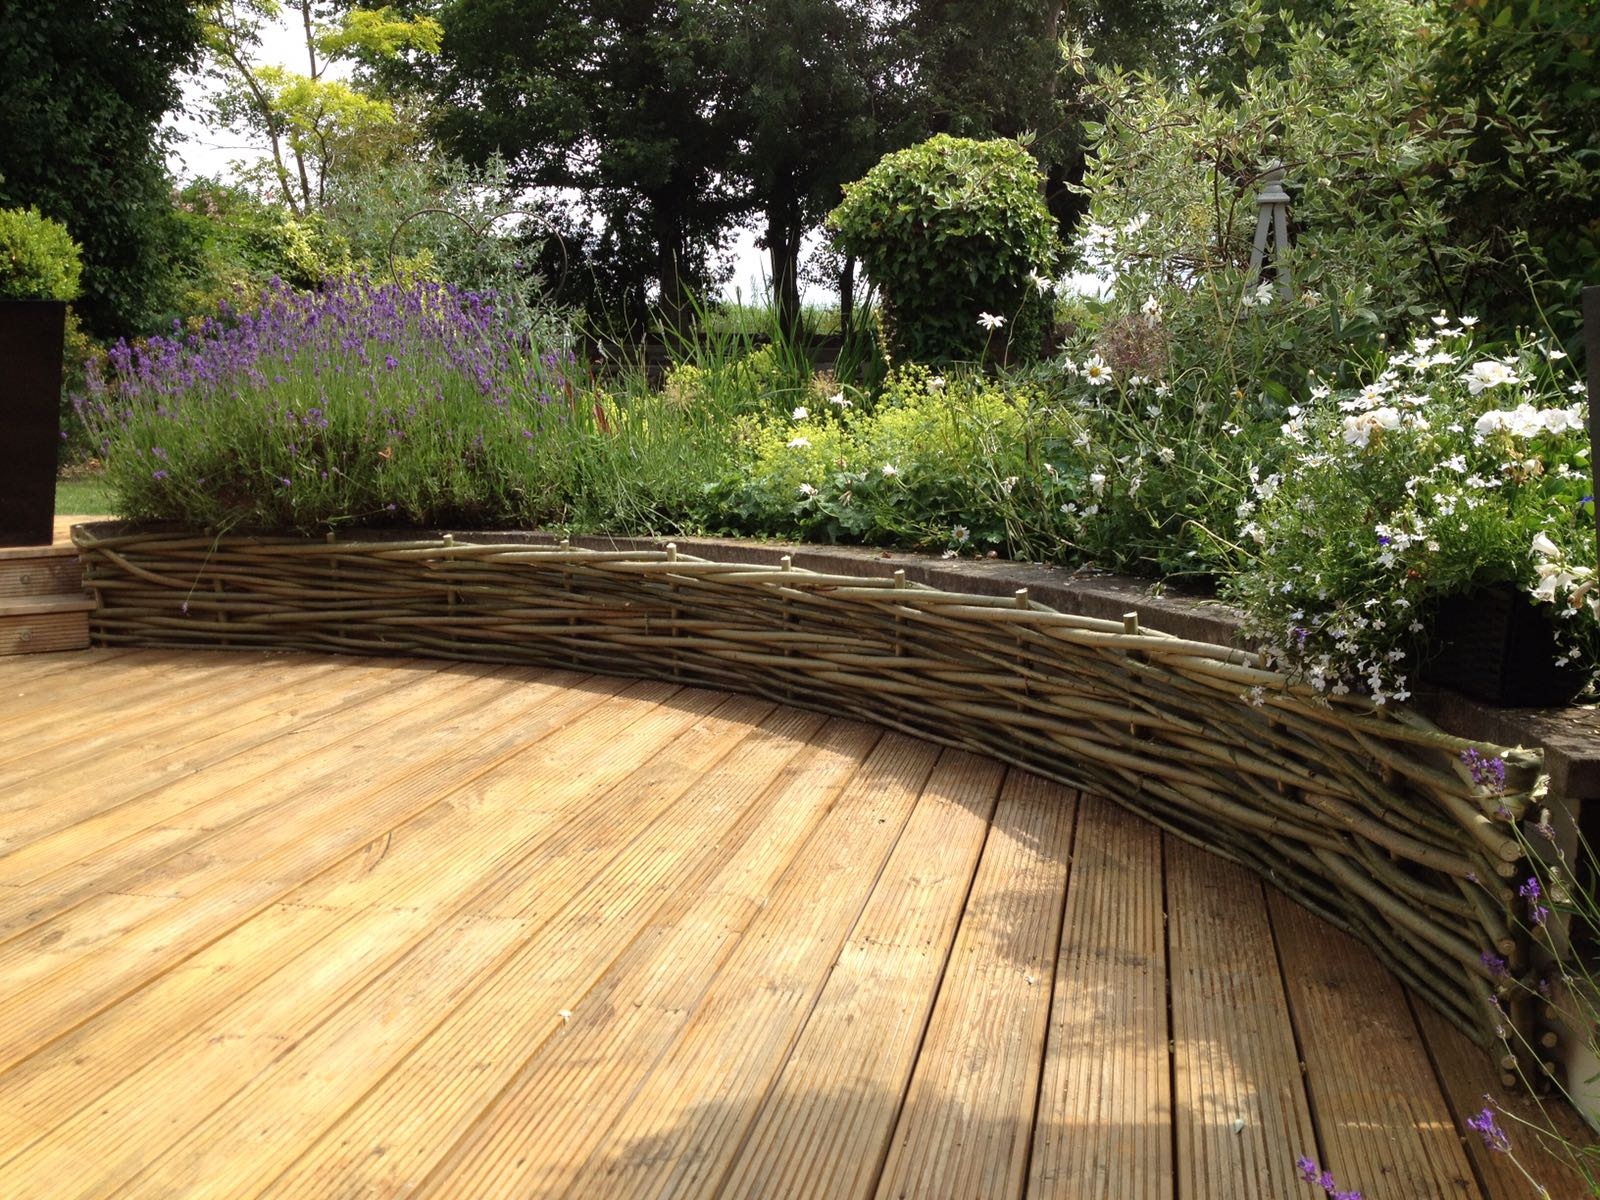 Low woven willow fence